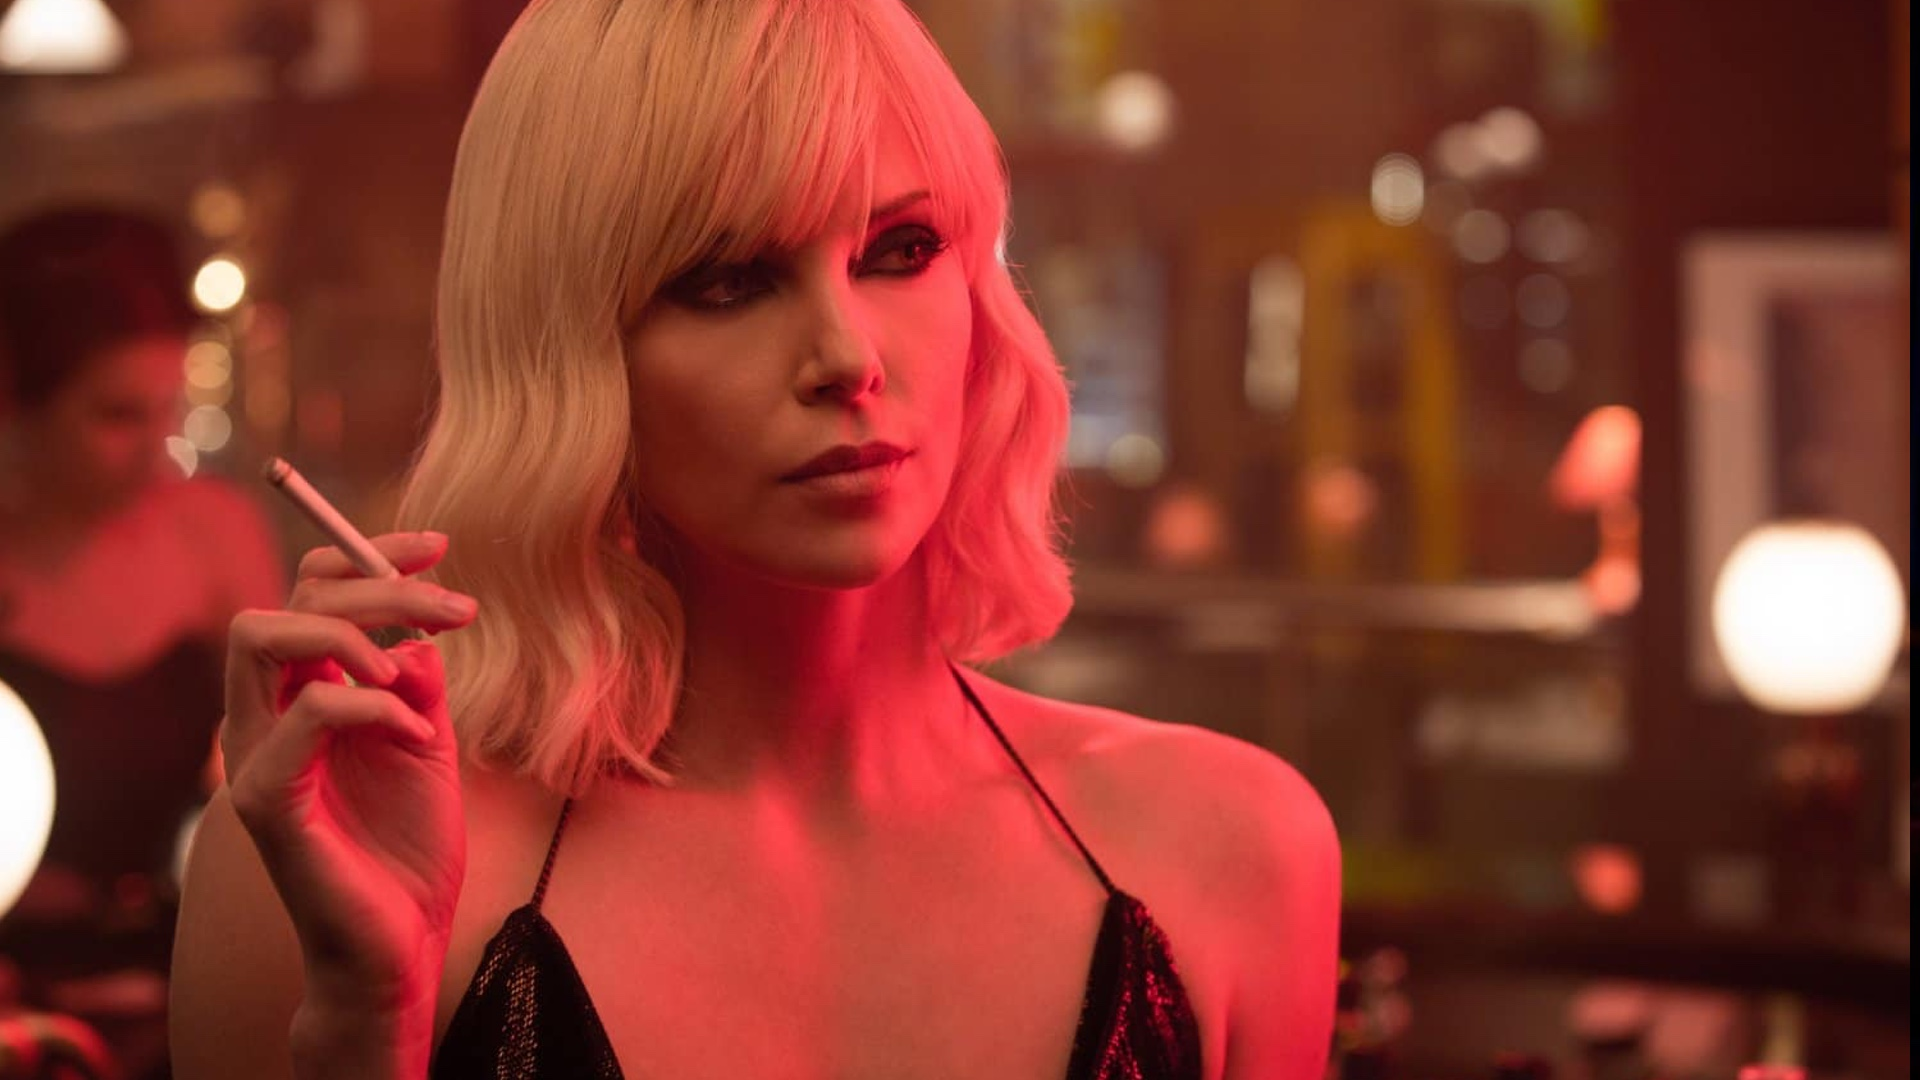 seth-rogen-and-charlize-therons-flarsky-gets-new-release-dates-from-lionsgate-social.jpg